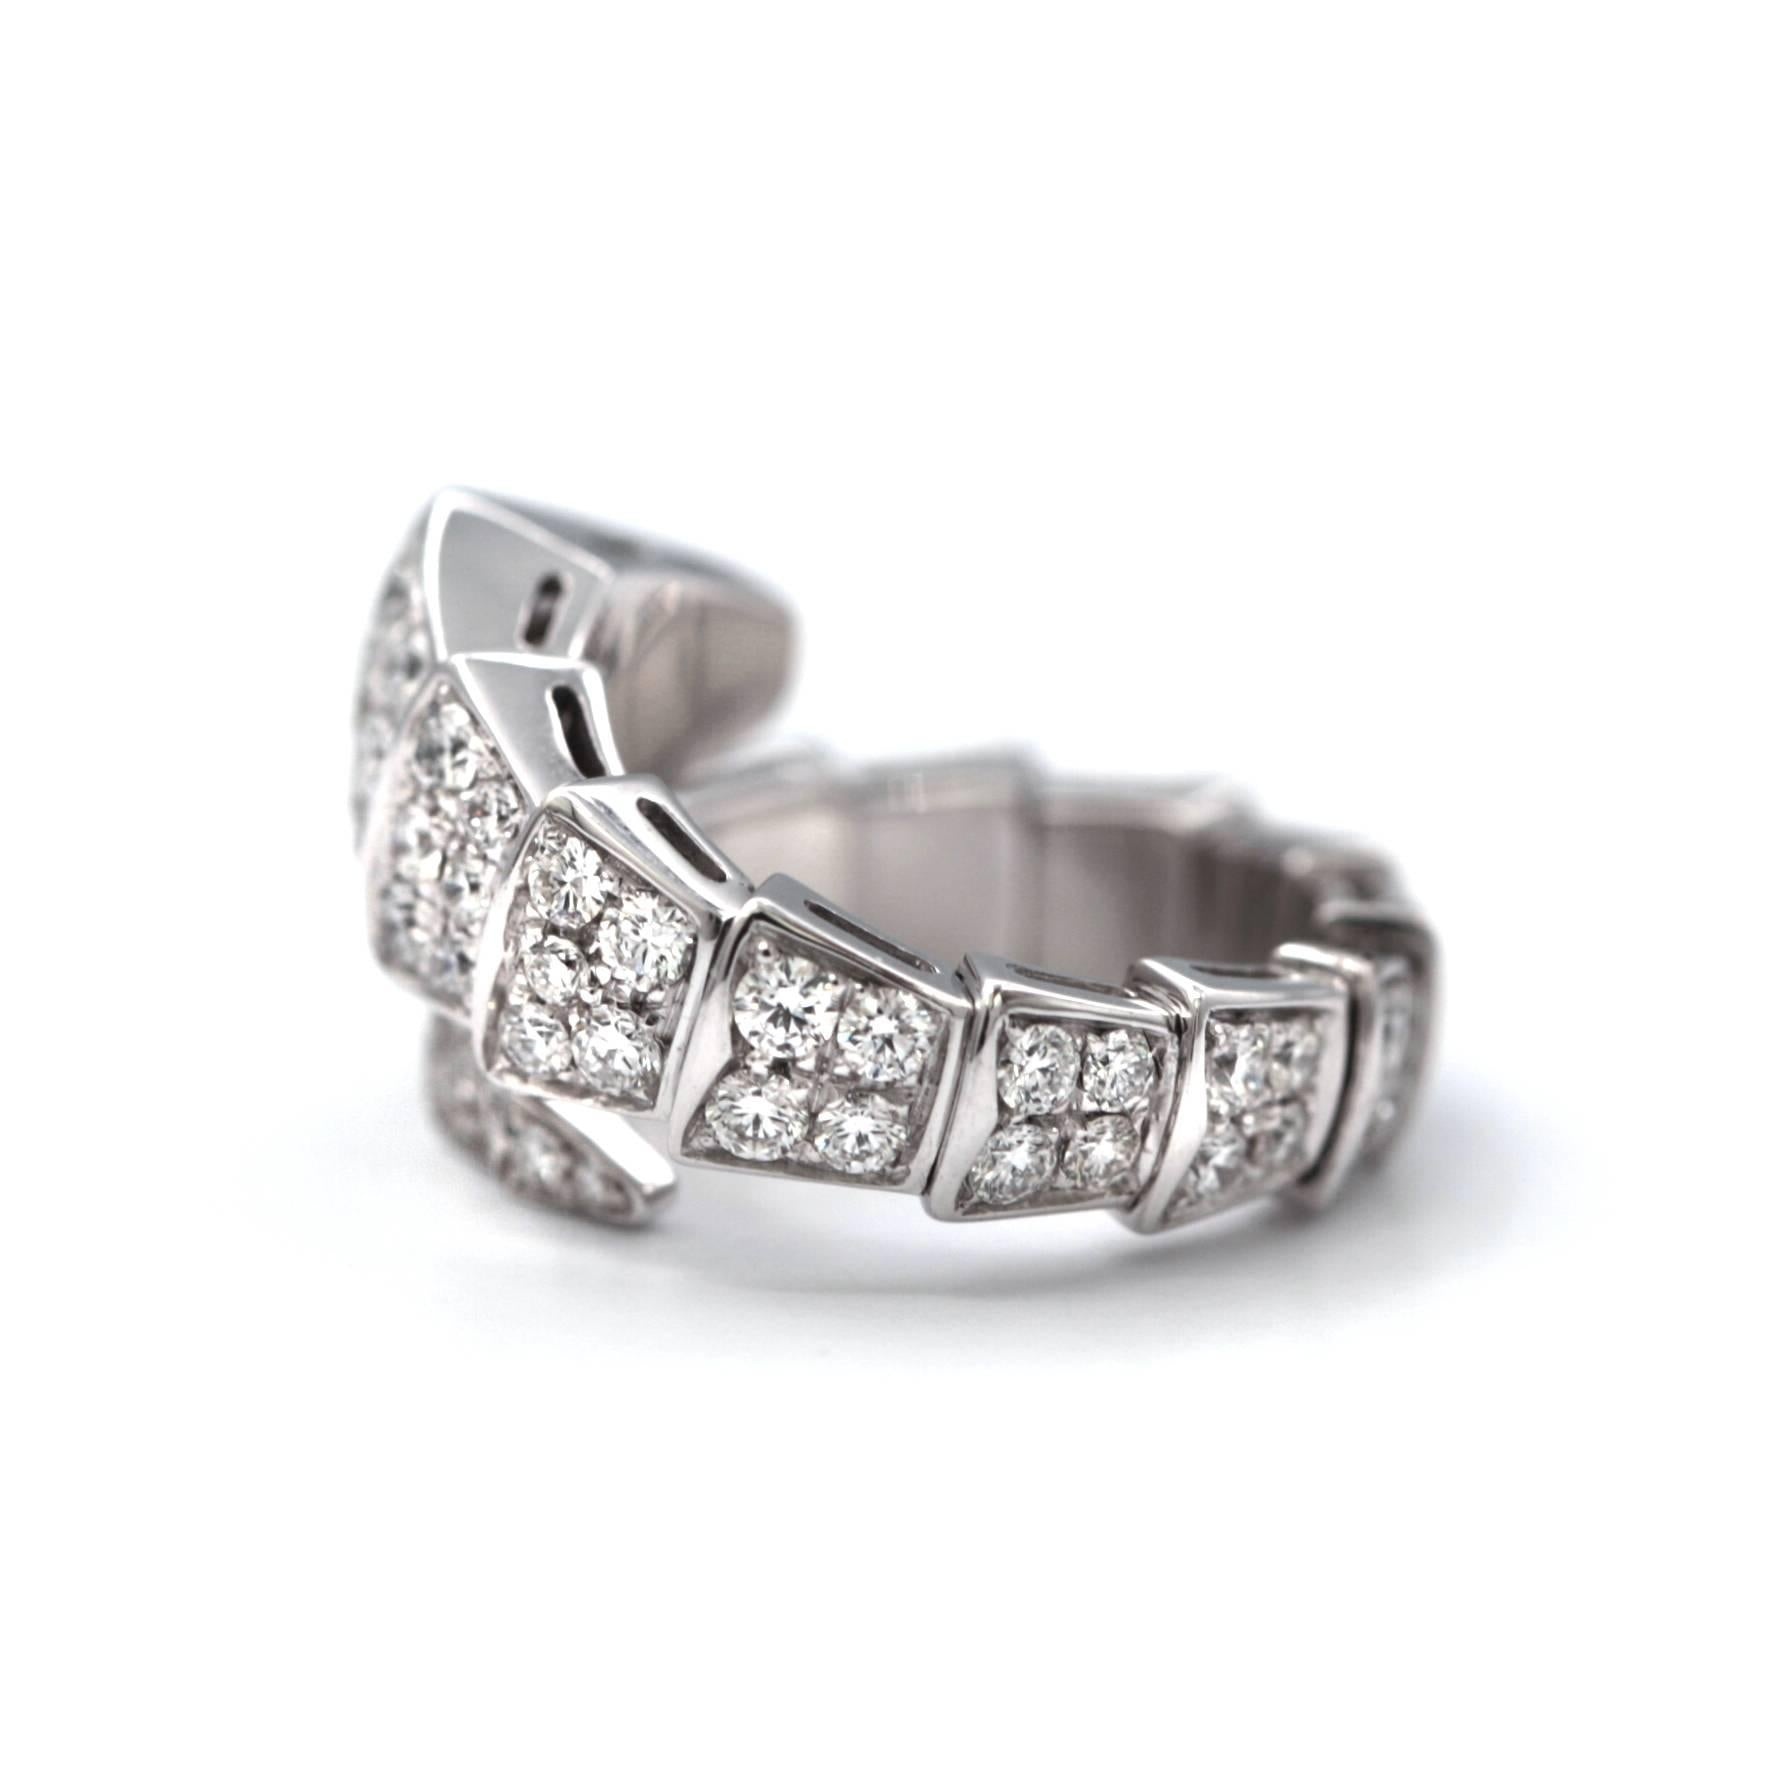 6422a4f5d Bvlgari Serpenti One-Coil 18 Karat with Pave Diamonds Ring | Upper ...